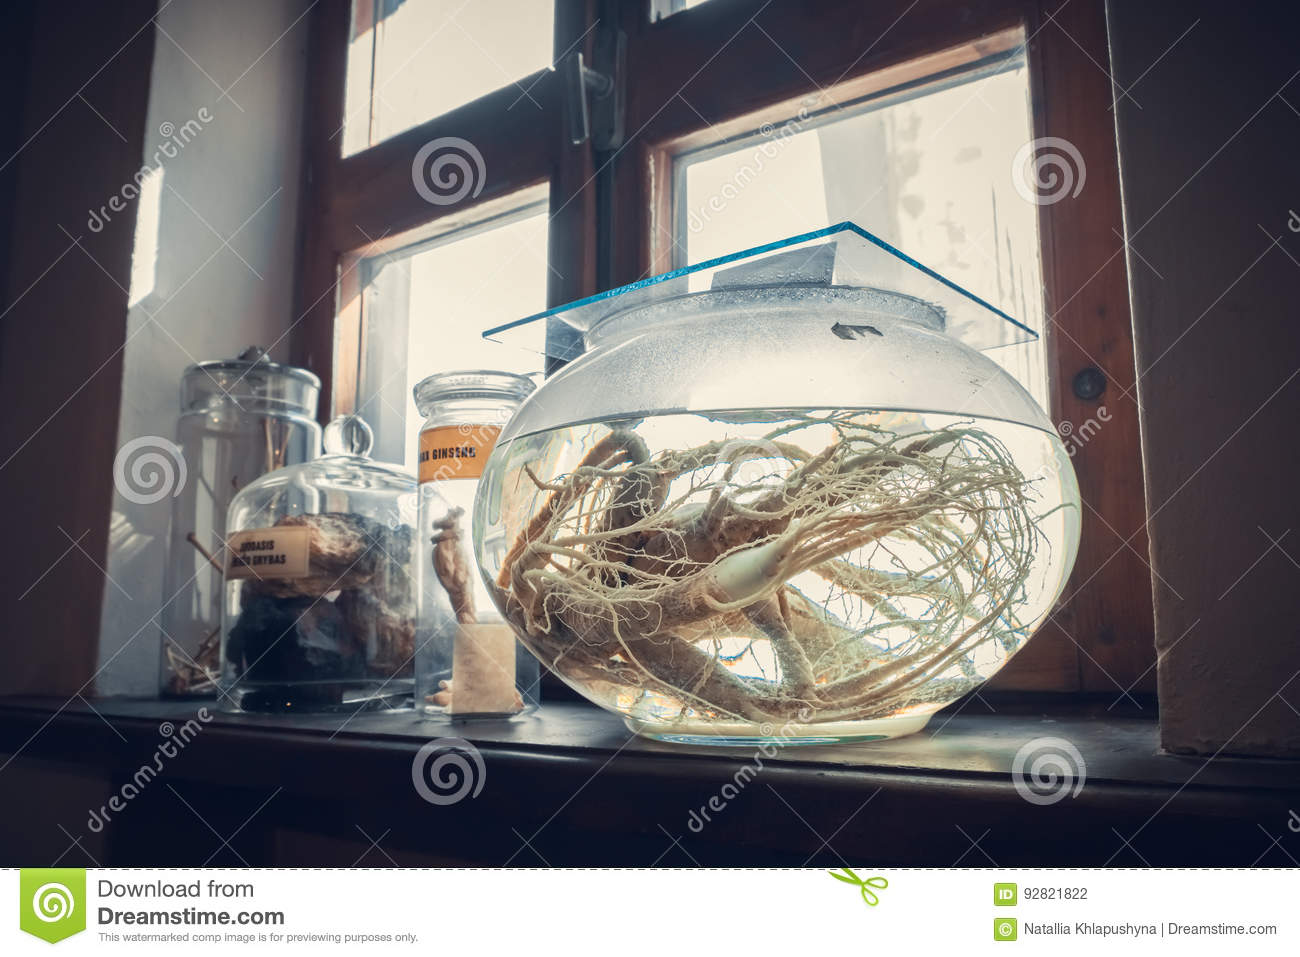 Kaunas, Lithuania - May 12, 2017: retro drugs, infusion in Museum of Medicine.